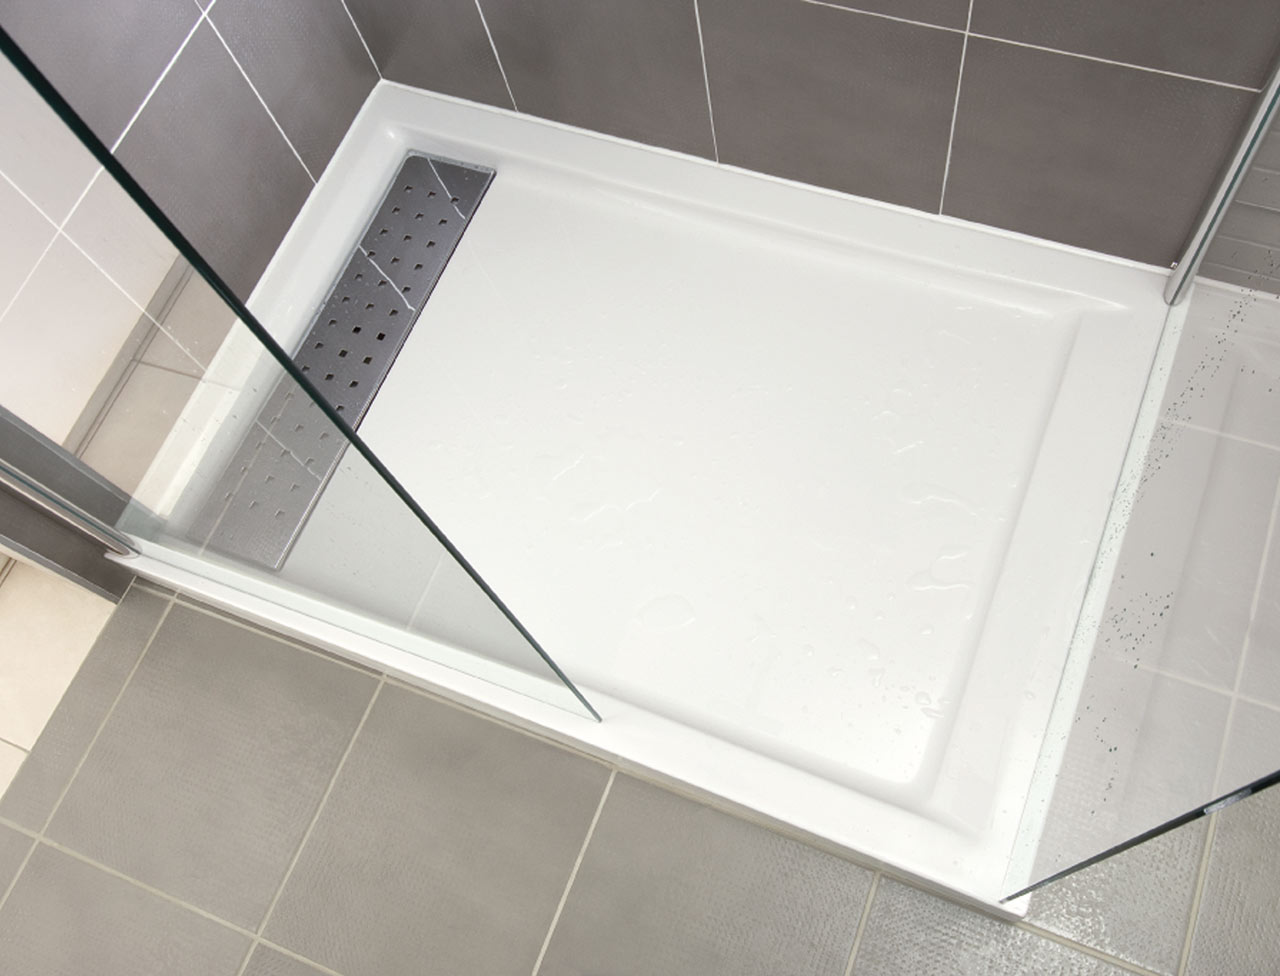 Joint carrelage douche photos de conception de maison for Carrelage design